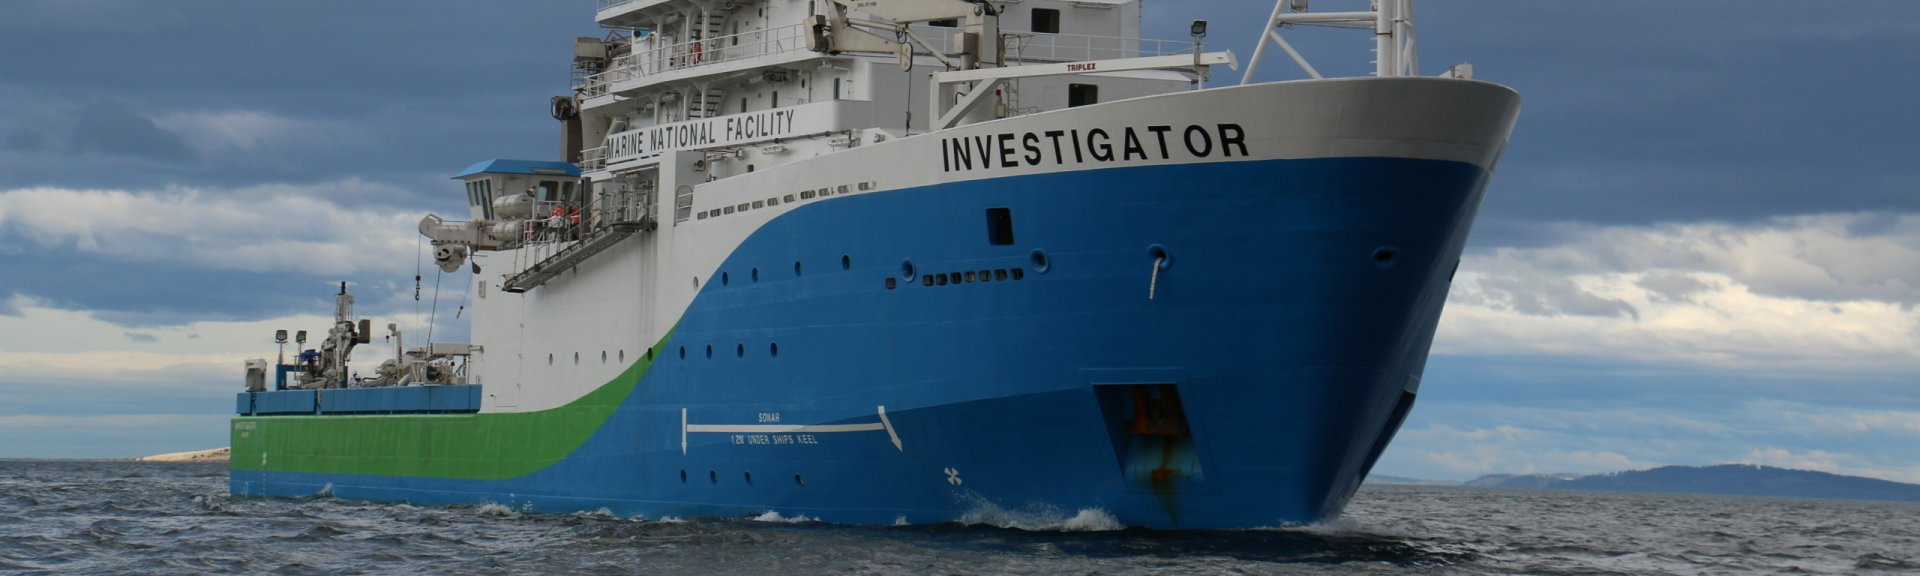 The Marine National Facility research vessel Investigator, departing Hobart. Photo by CSIRO